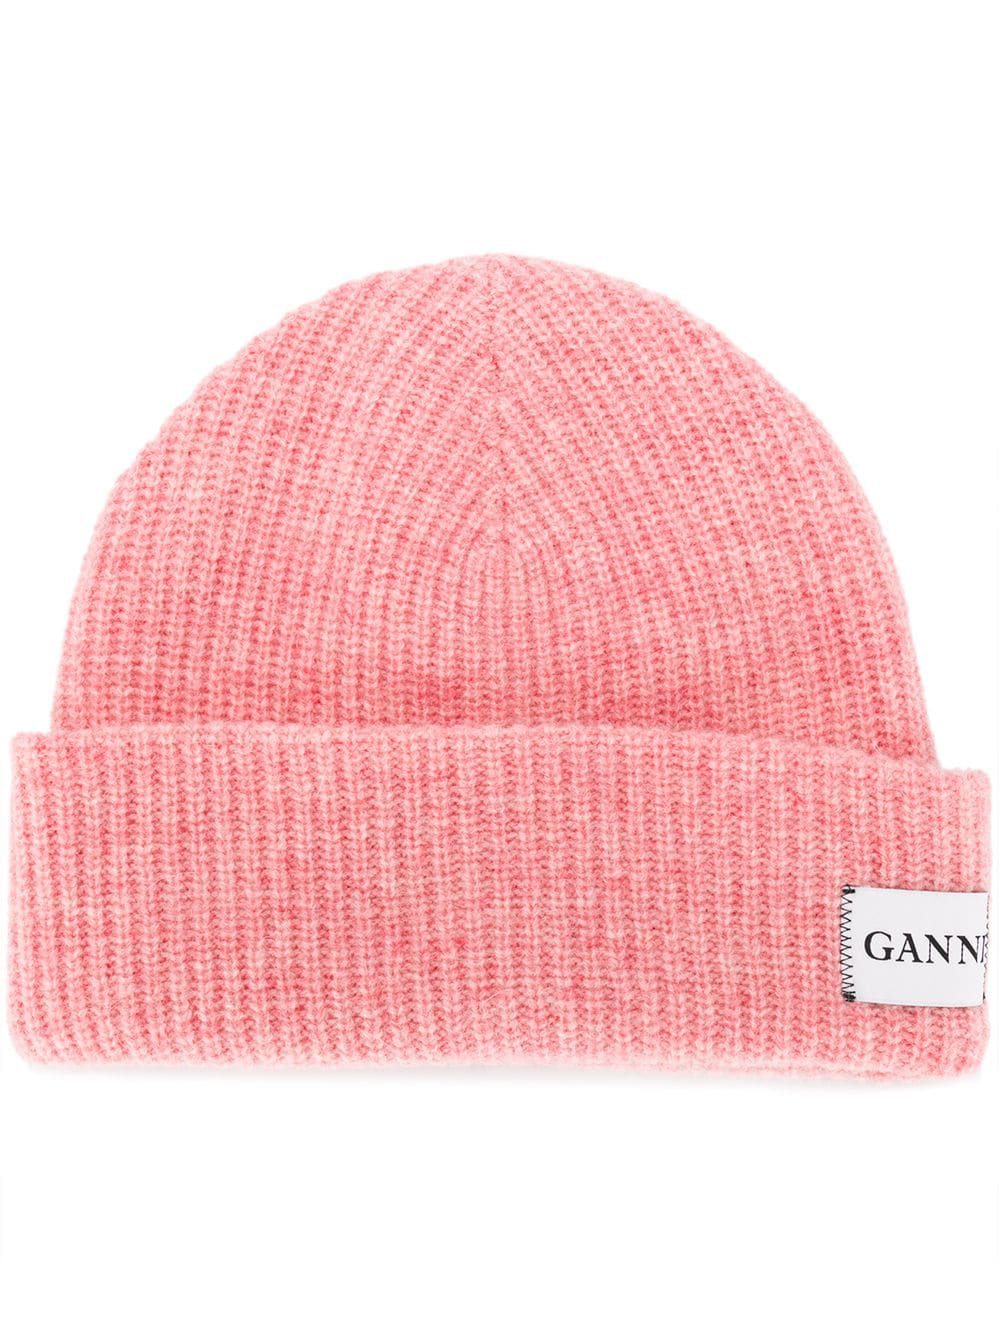 a84aa76743f8d Ganni - Hatley Ribbed Wool Blend Beanie Hat - Womens - White